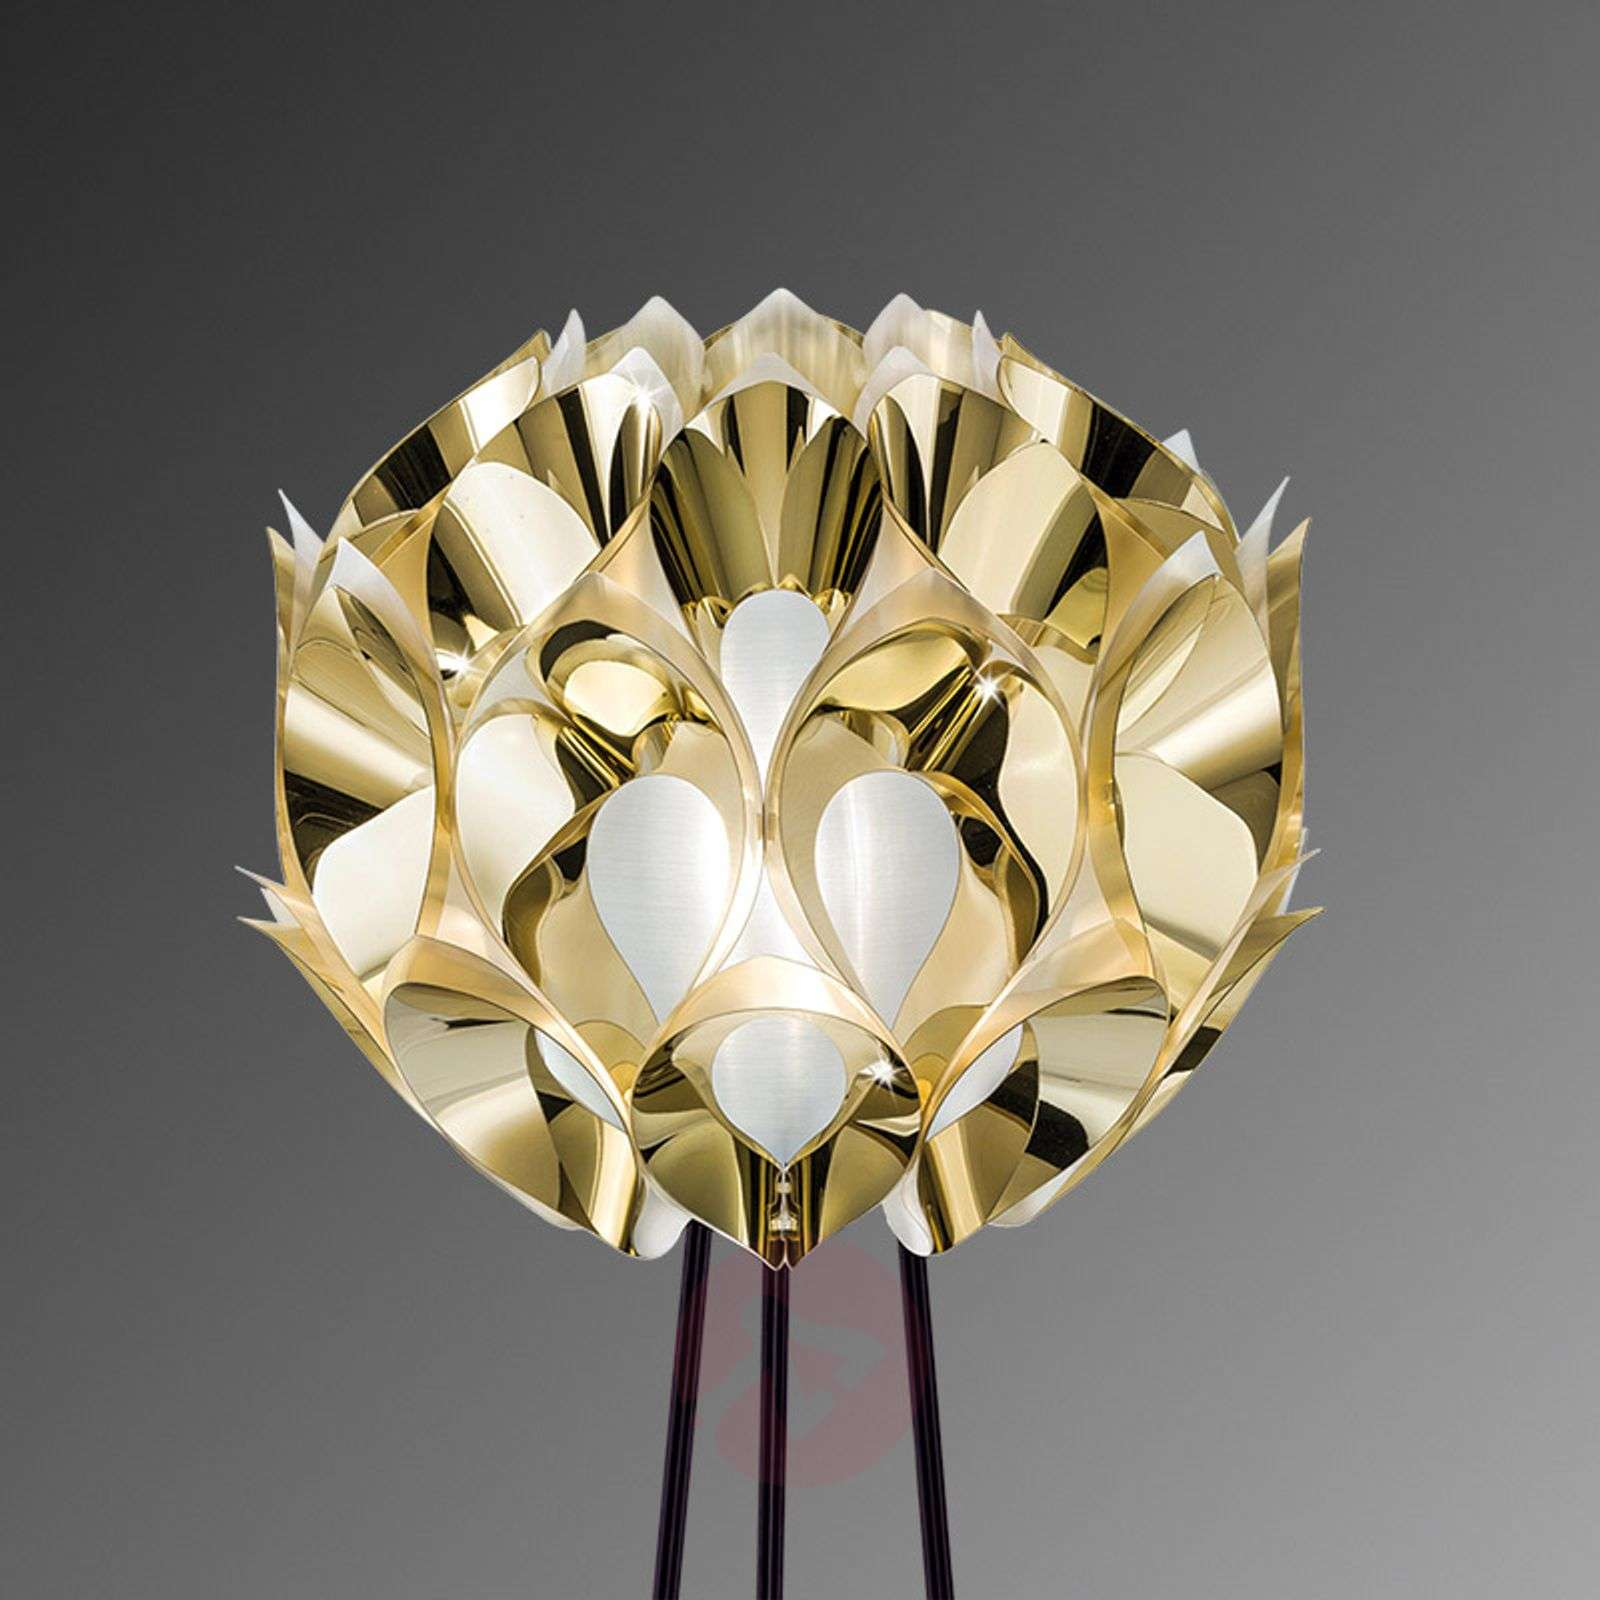 Enchanting Flora floor lamp in gold-8503237-01